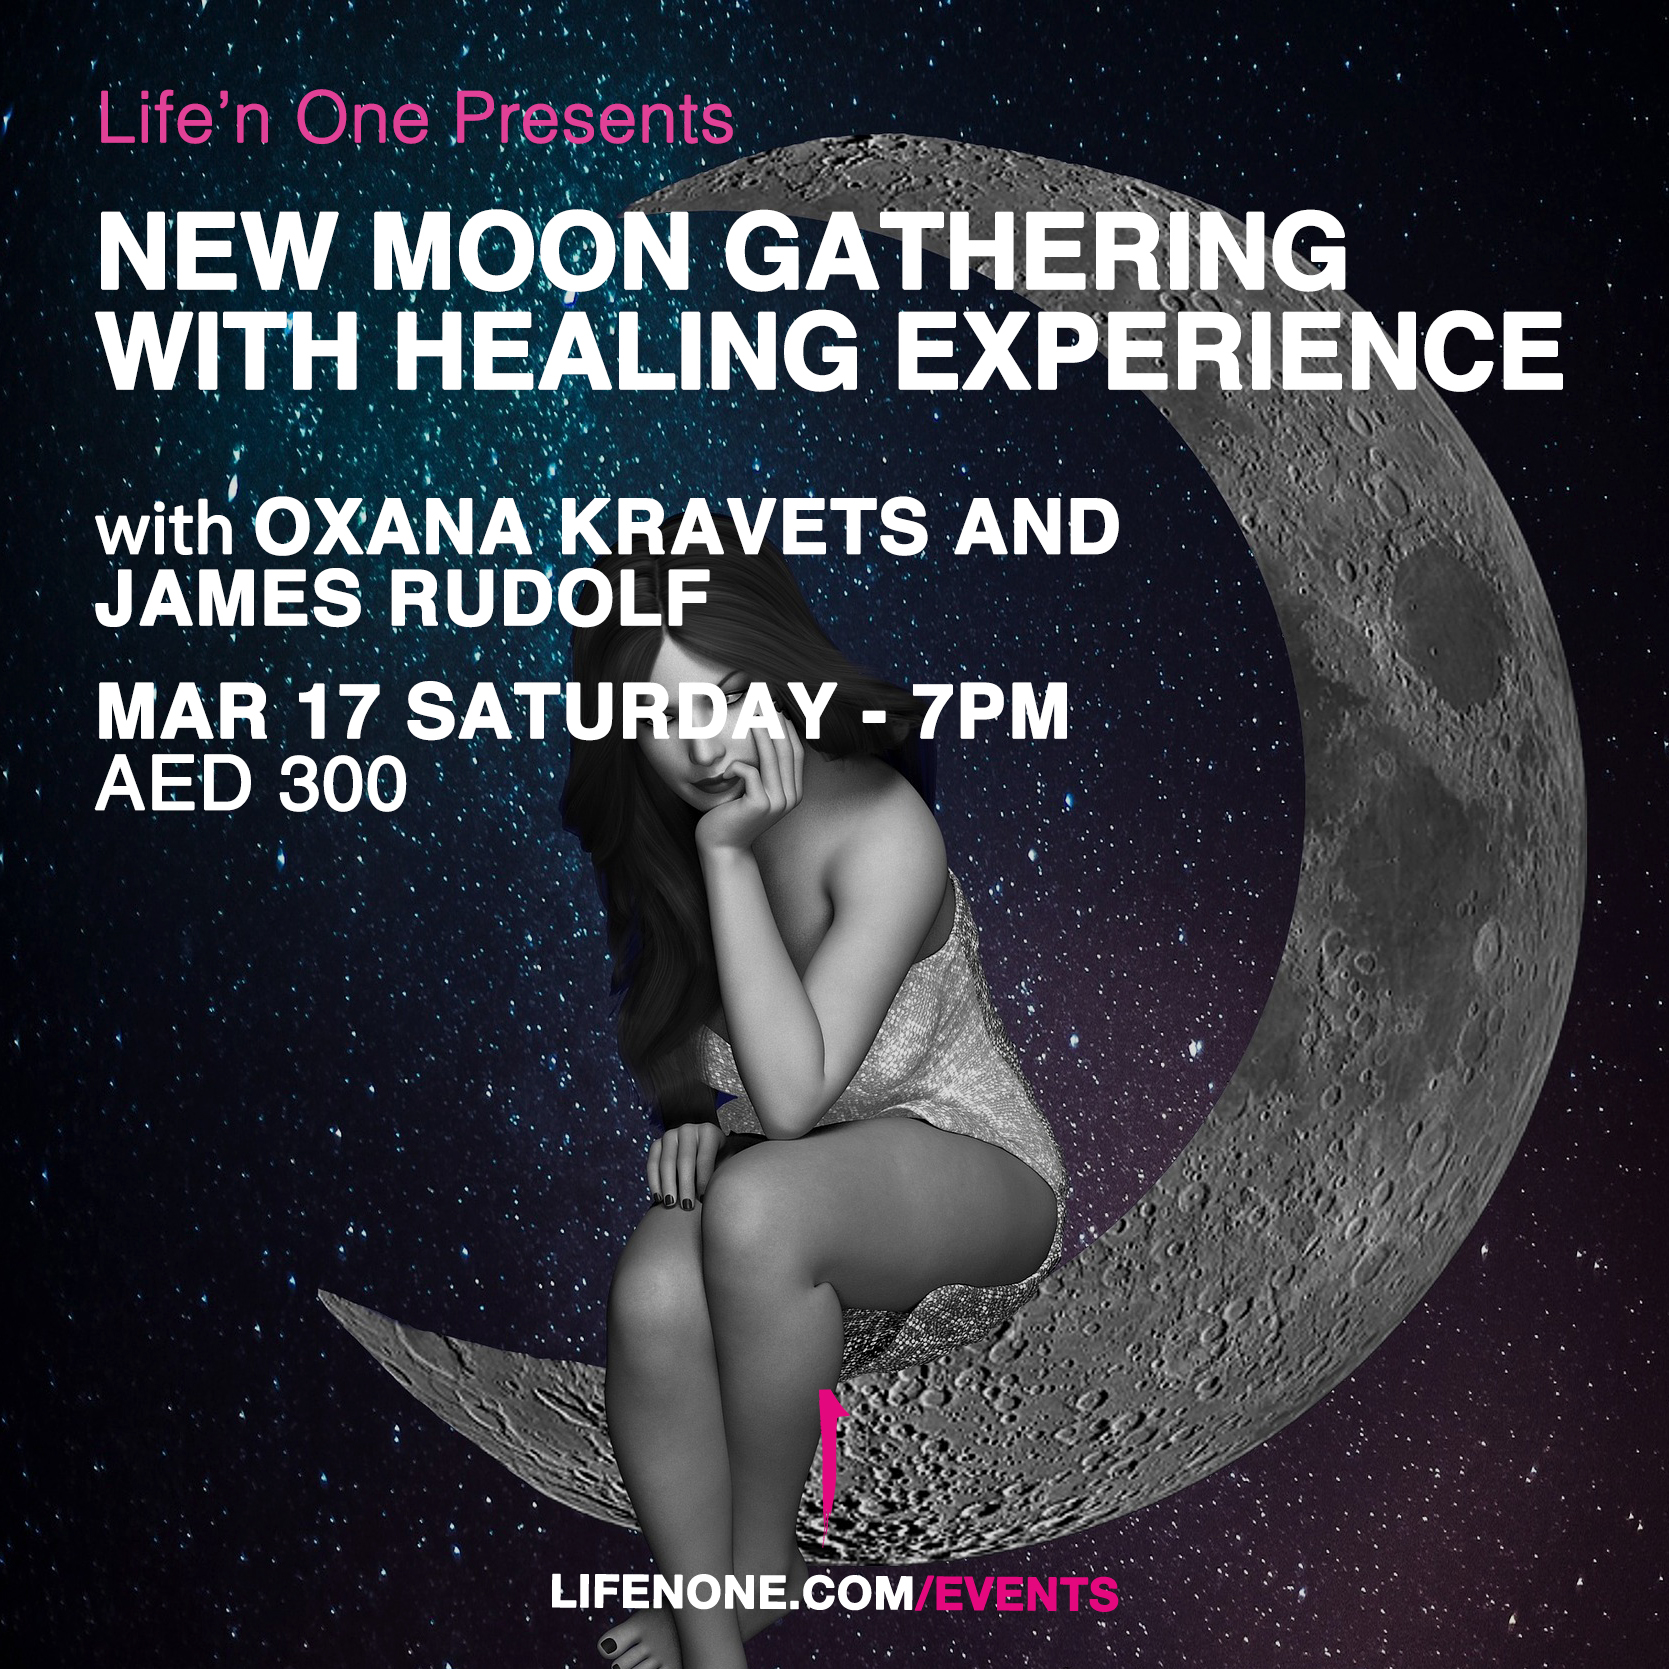 New Moon Gathering with Healing Experience with Oxana Kravets and James Rudolf